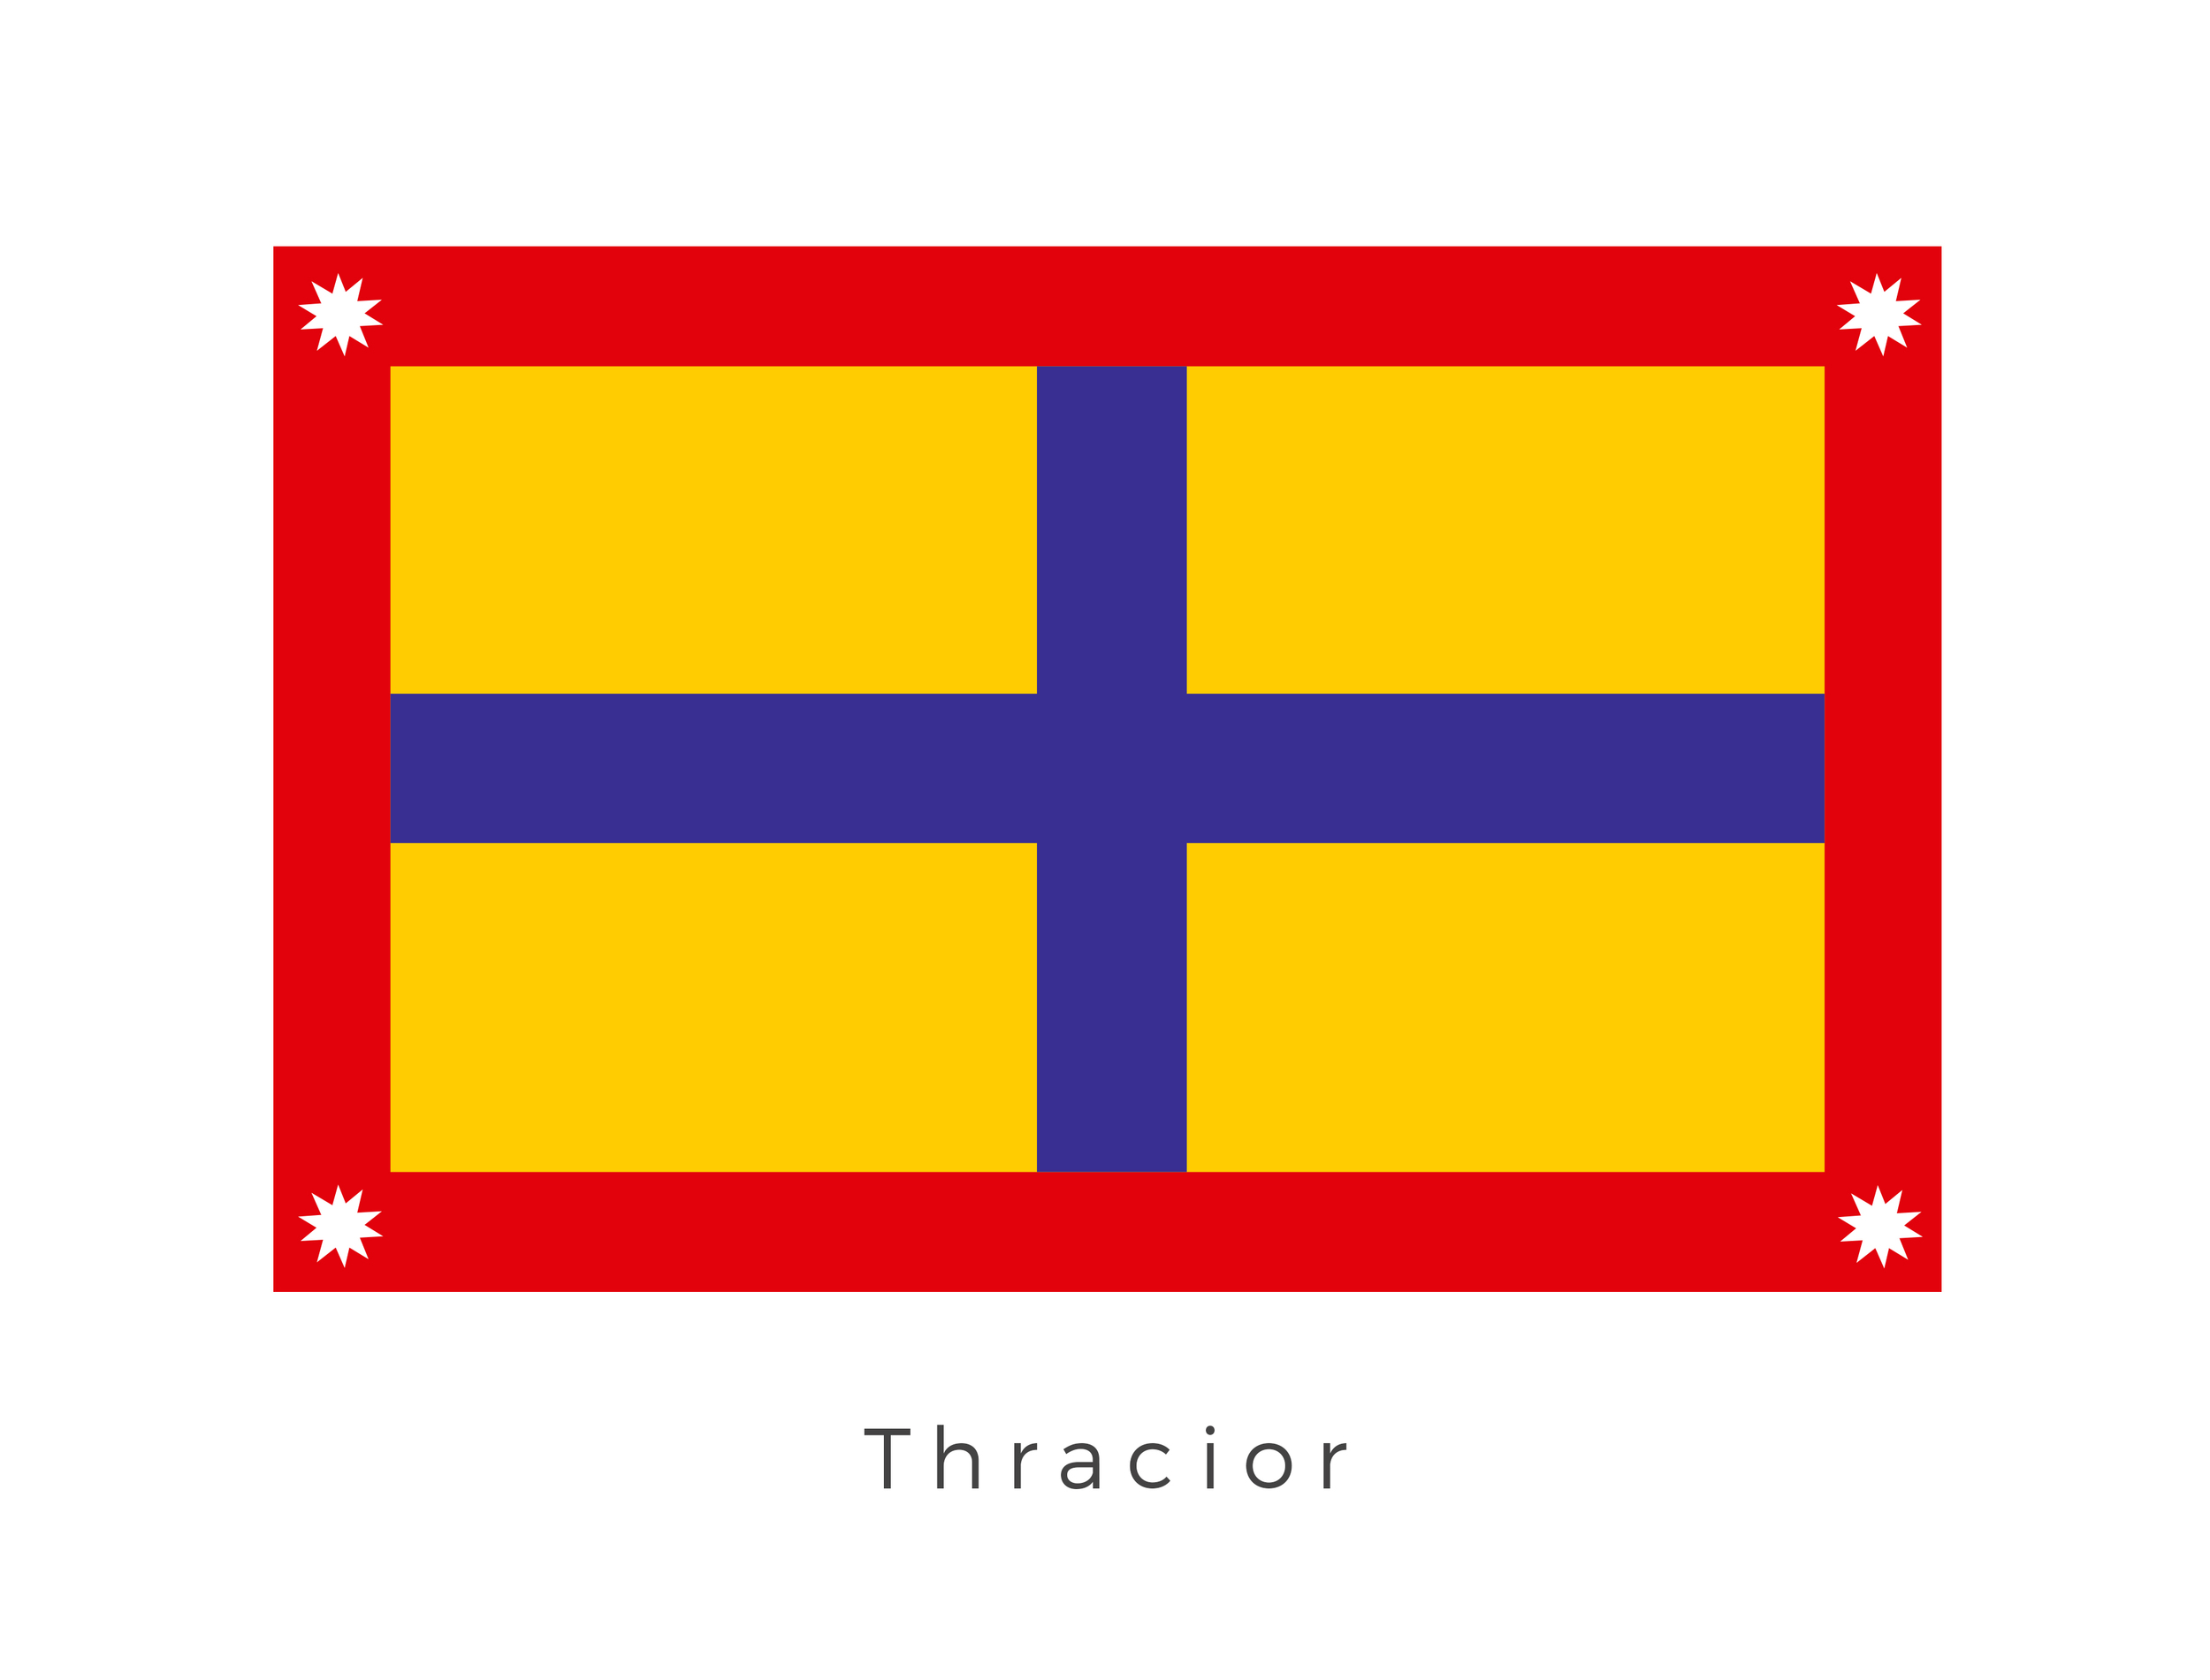 Thracior  was a planet located within the Thracior system of the Core Worlds. The planet was ruled by tribal Warlords. The four most prominent tribes are represented in the perfectly symmetrical design, with the blue cross and corner stars representing the area they individually ruled.